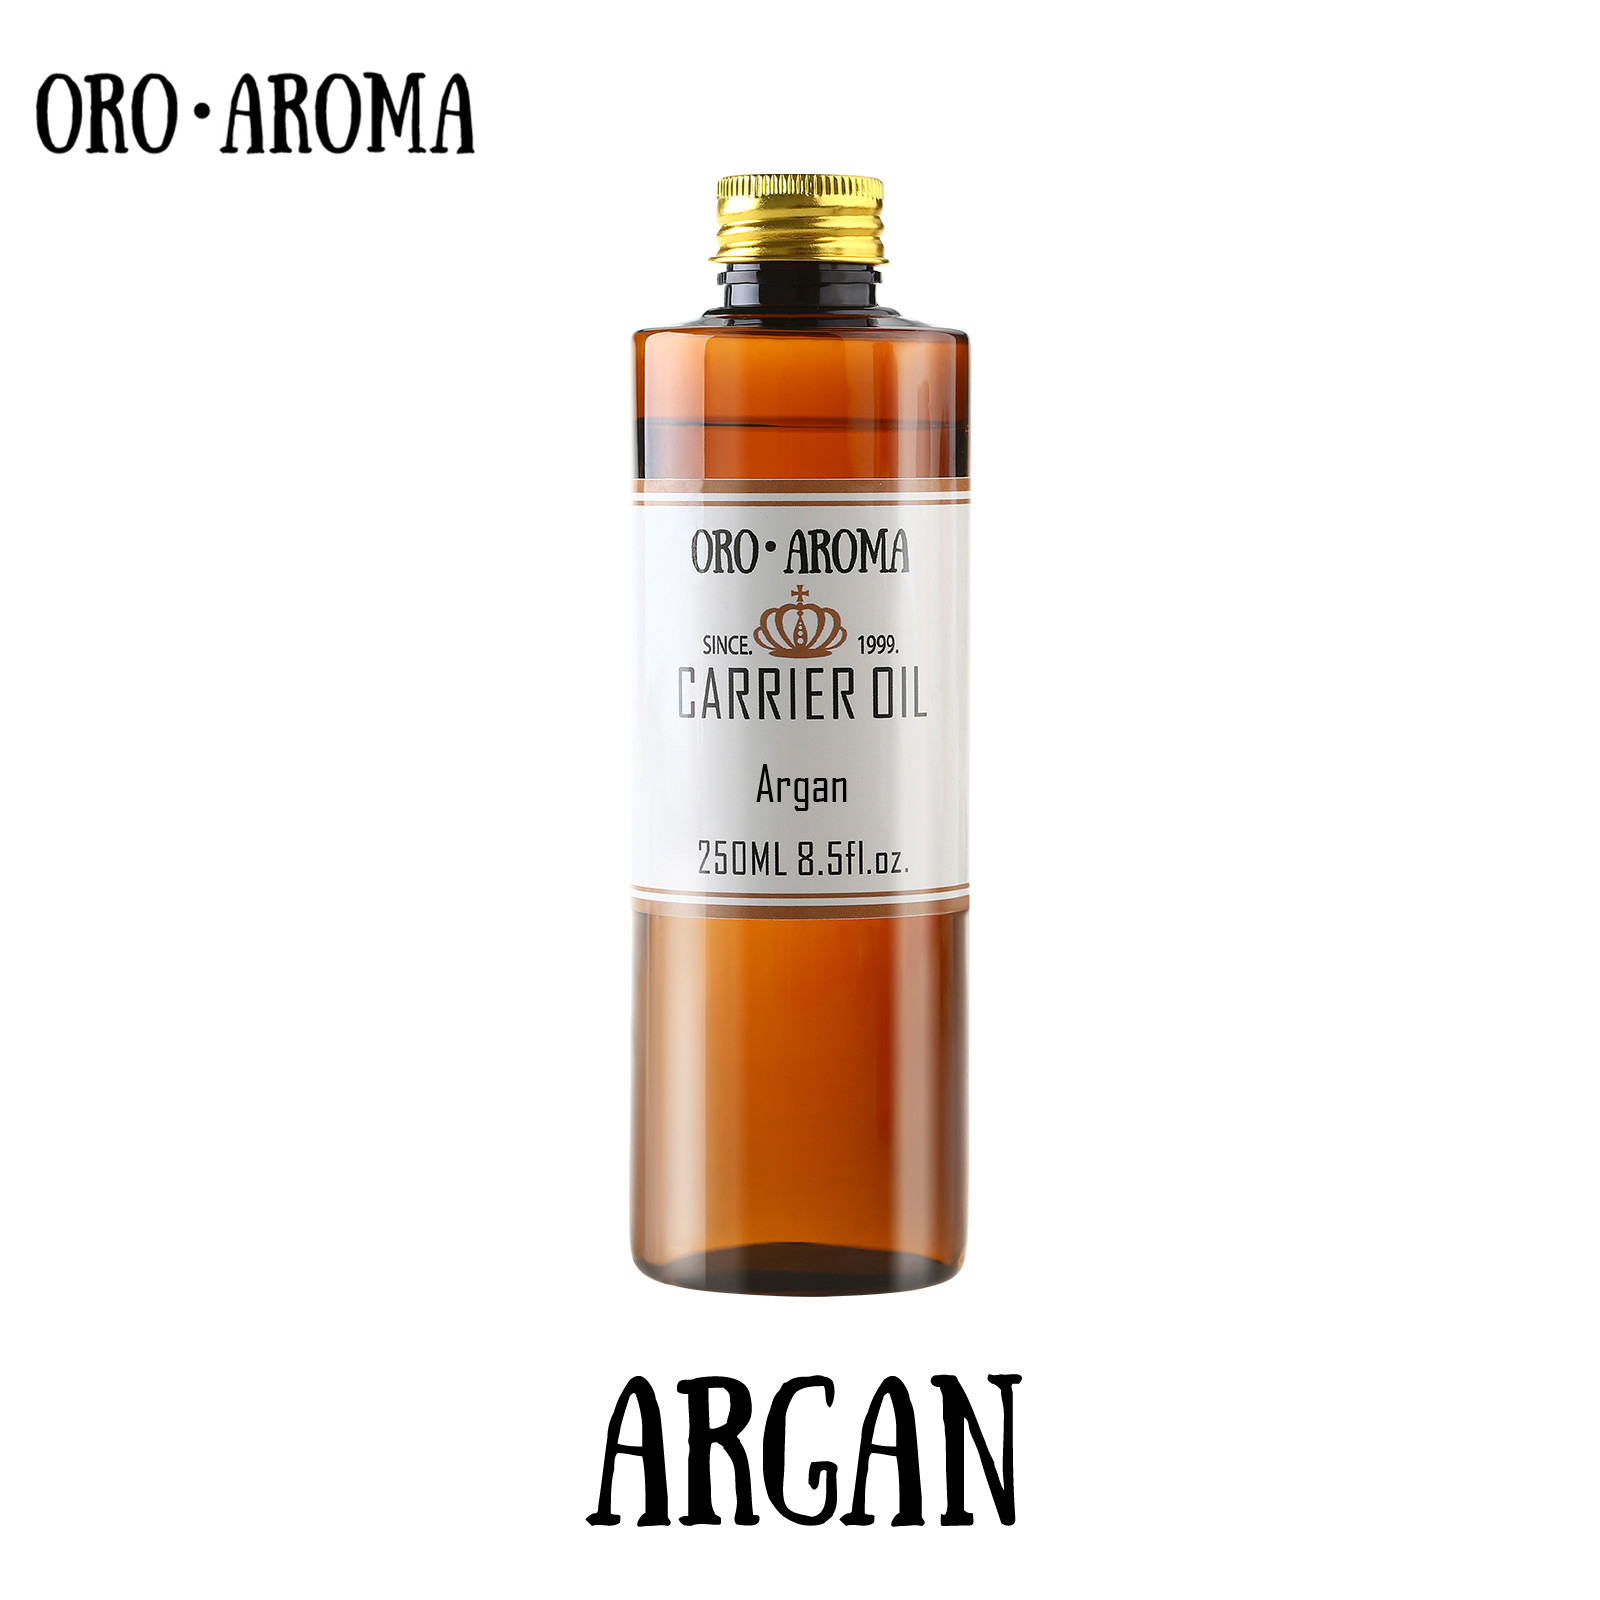 Famous brand oroaroma natural Argan Morocco nut oil essential oil natural aromatherapy highcapacity skin body care massage spa famous brand oroaroma castor oil natural aromatherapy high capacity skin body care massage spa castor essential oil